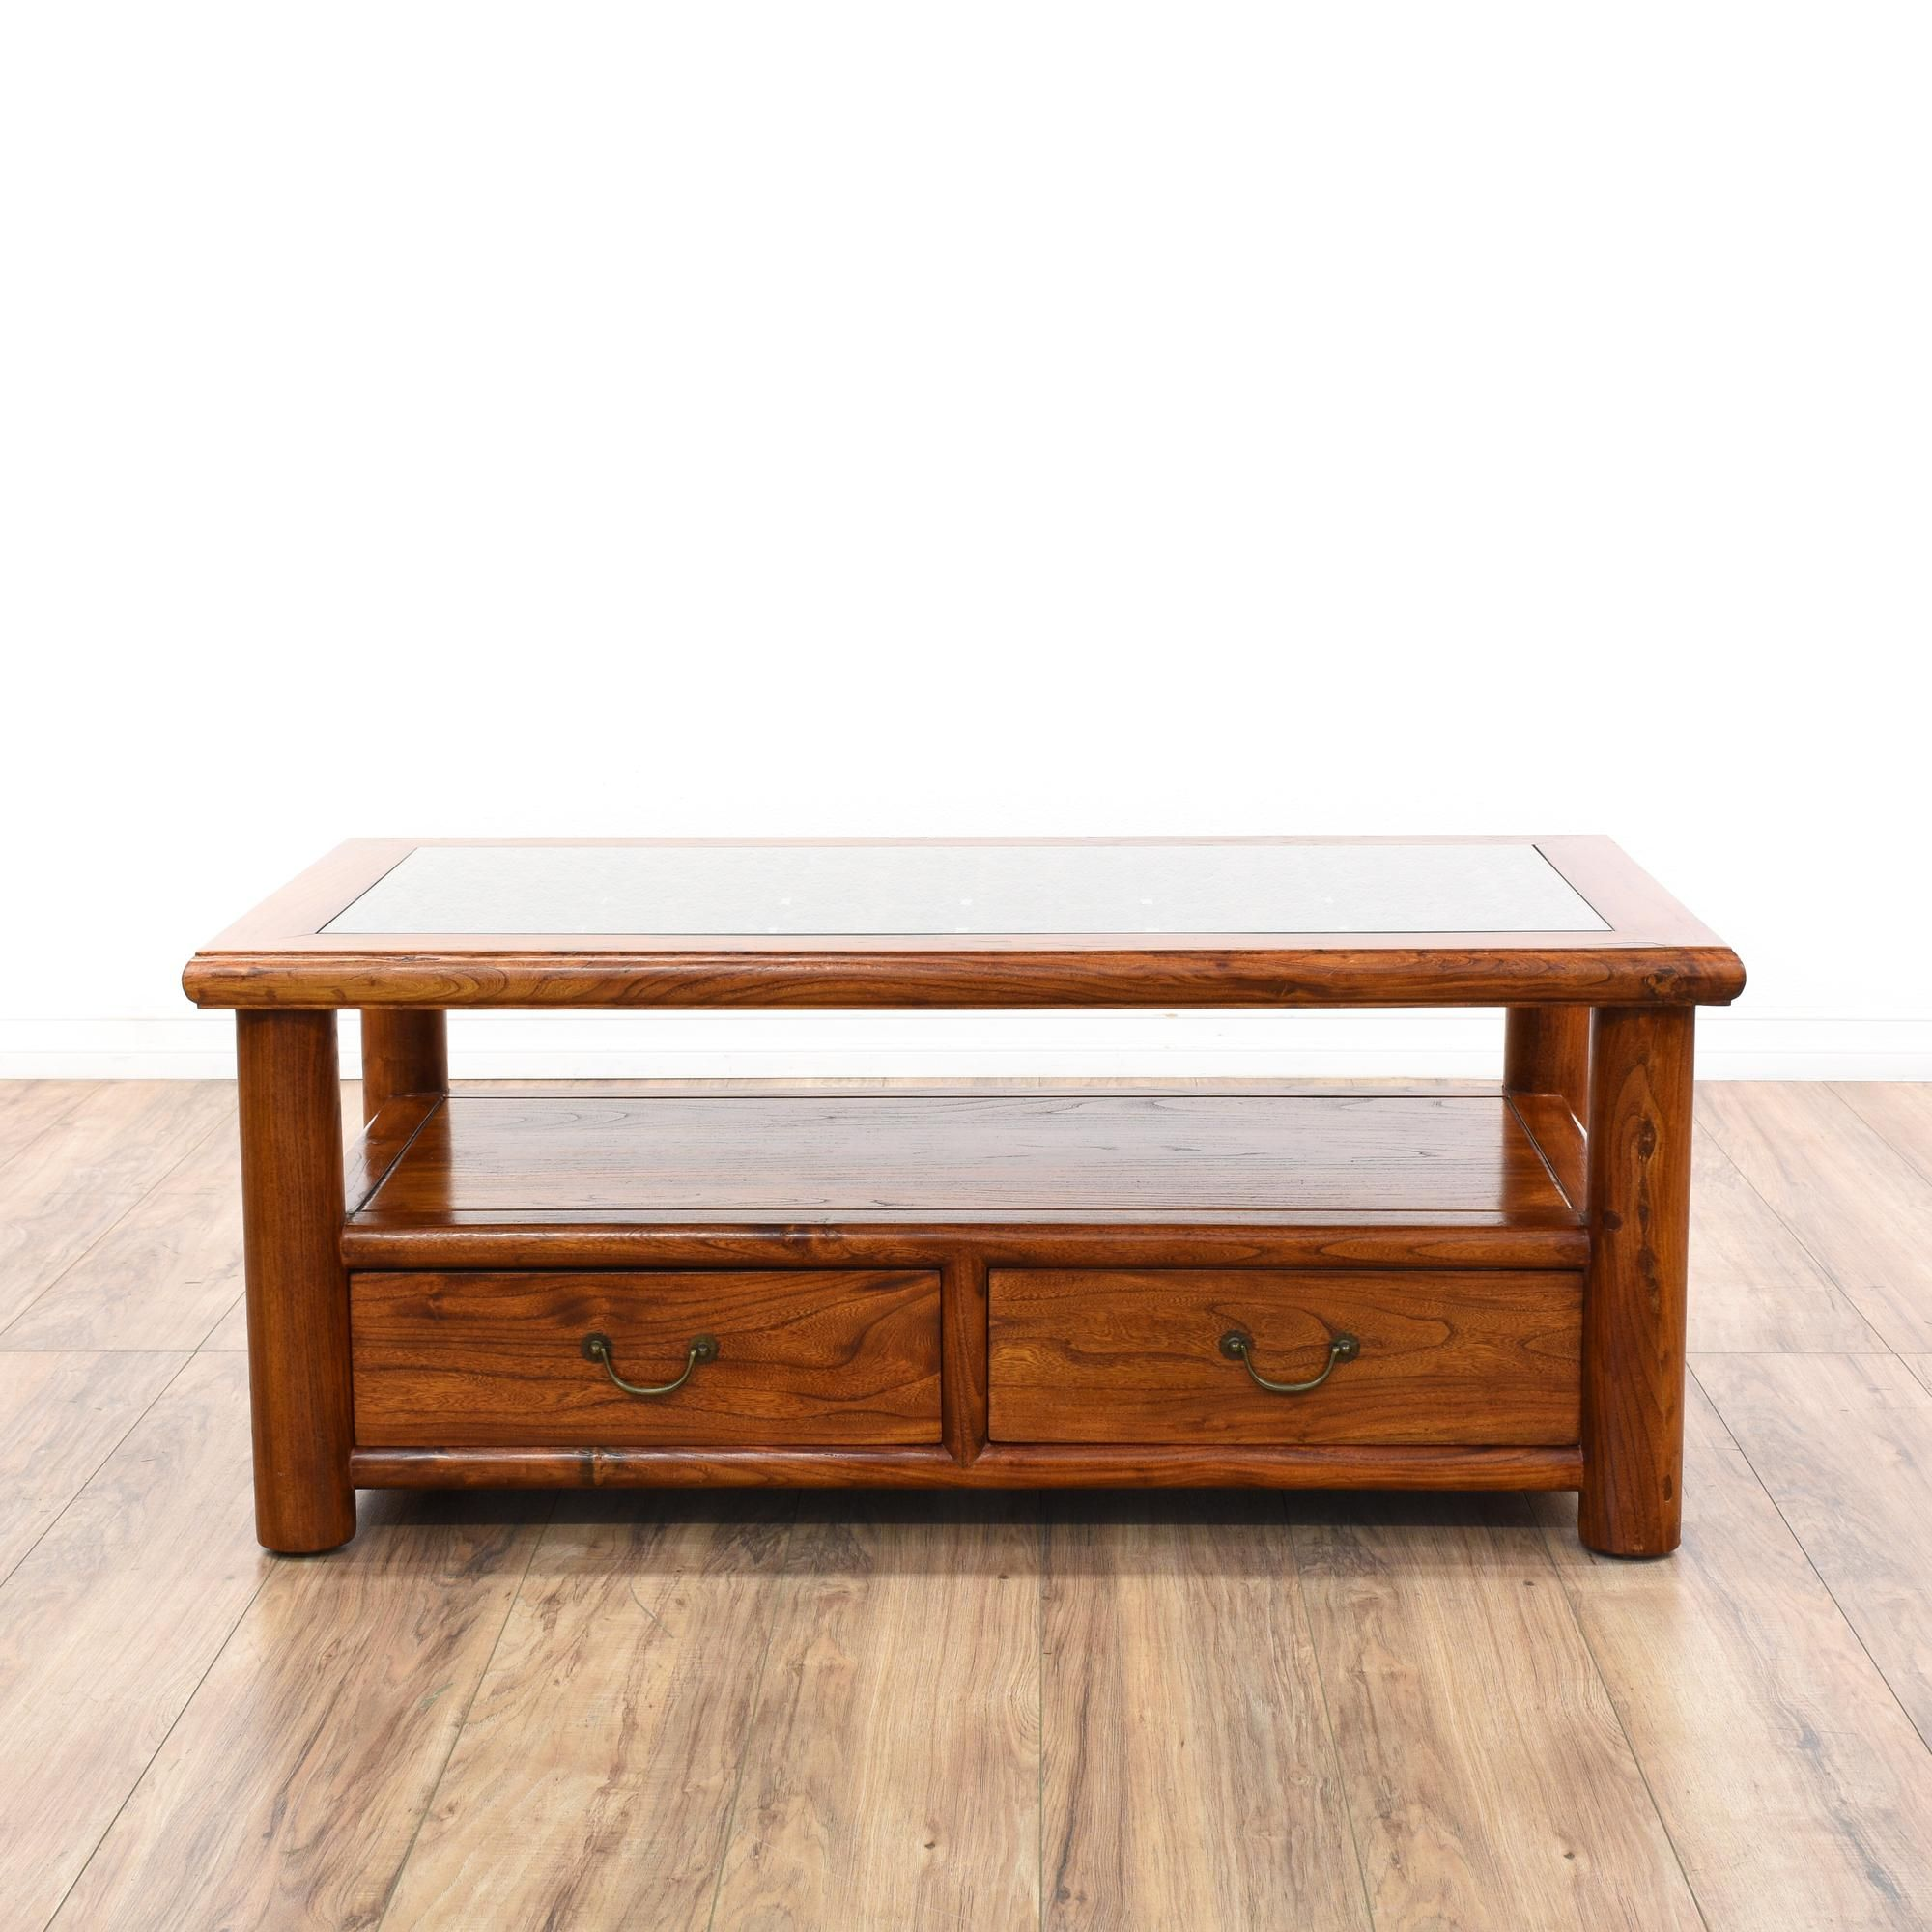 This asian coffee table is featured in a solid wood with a